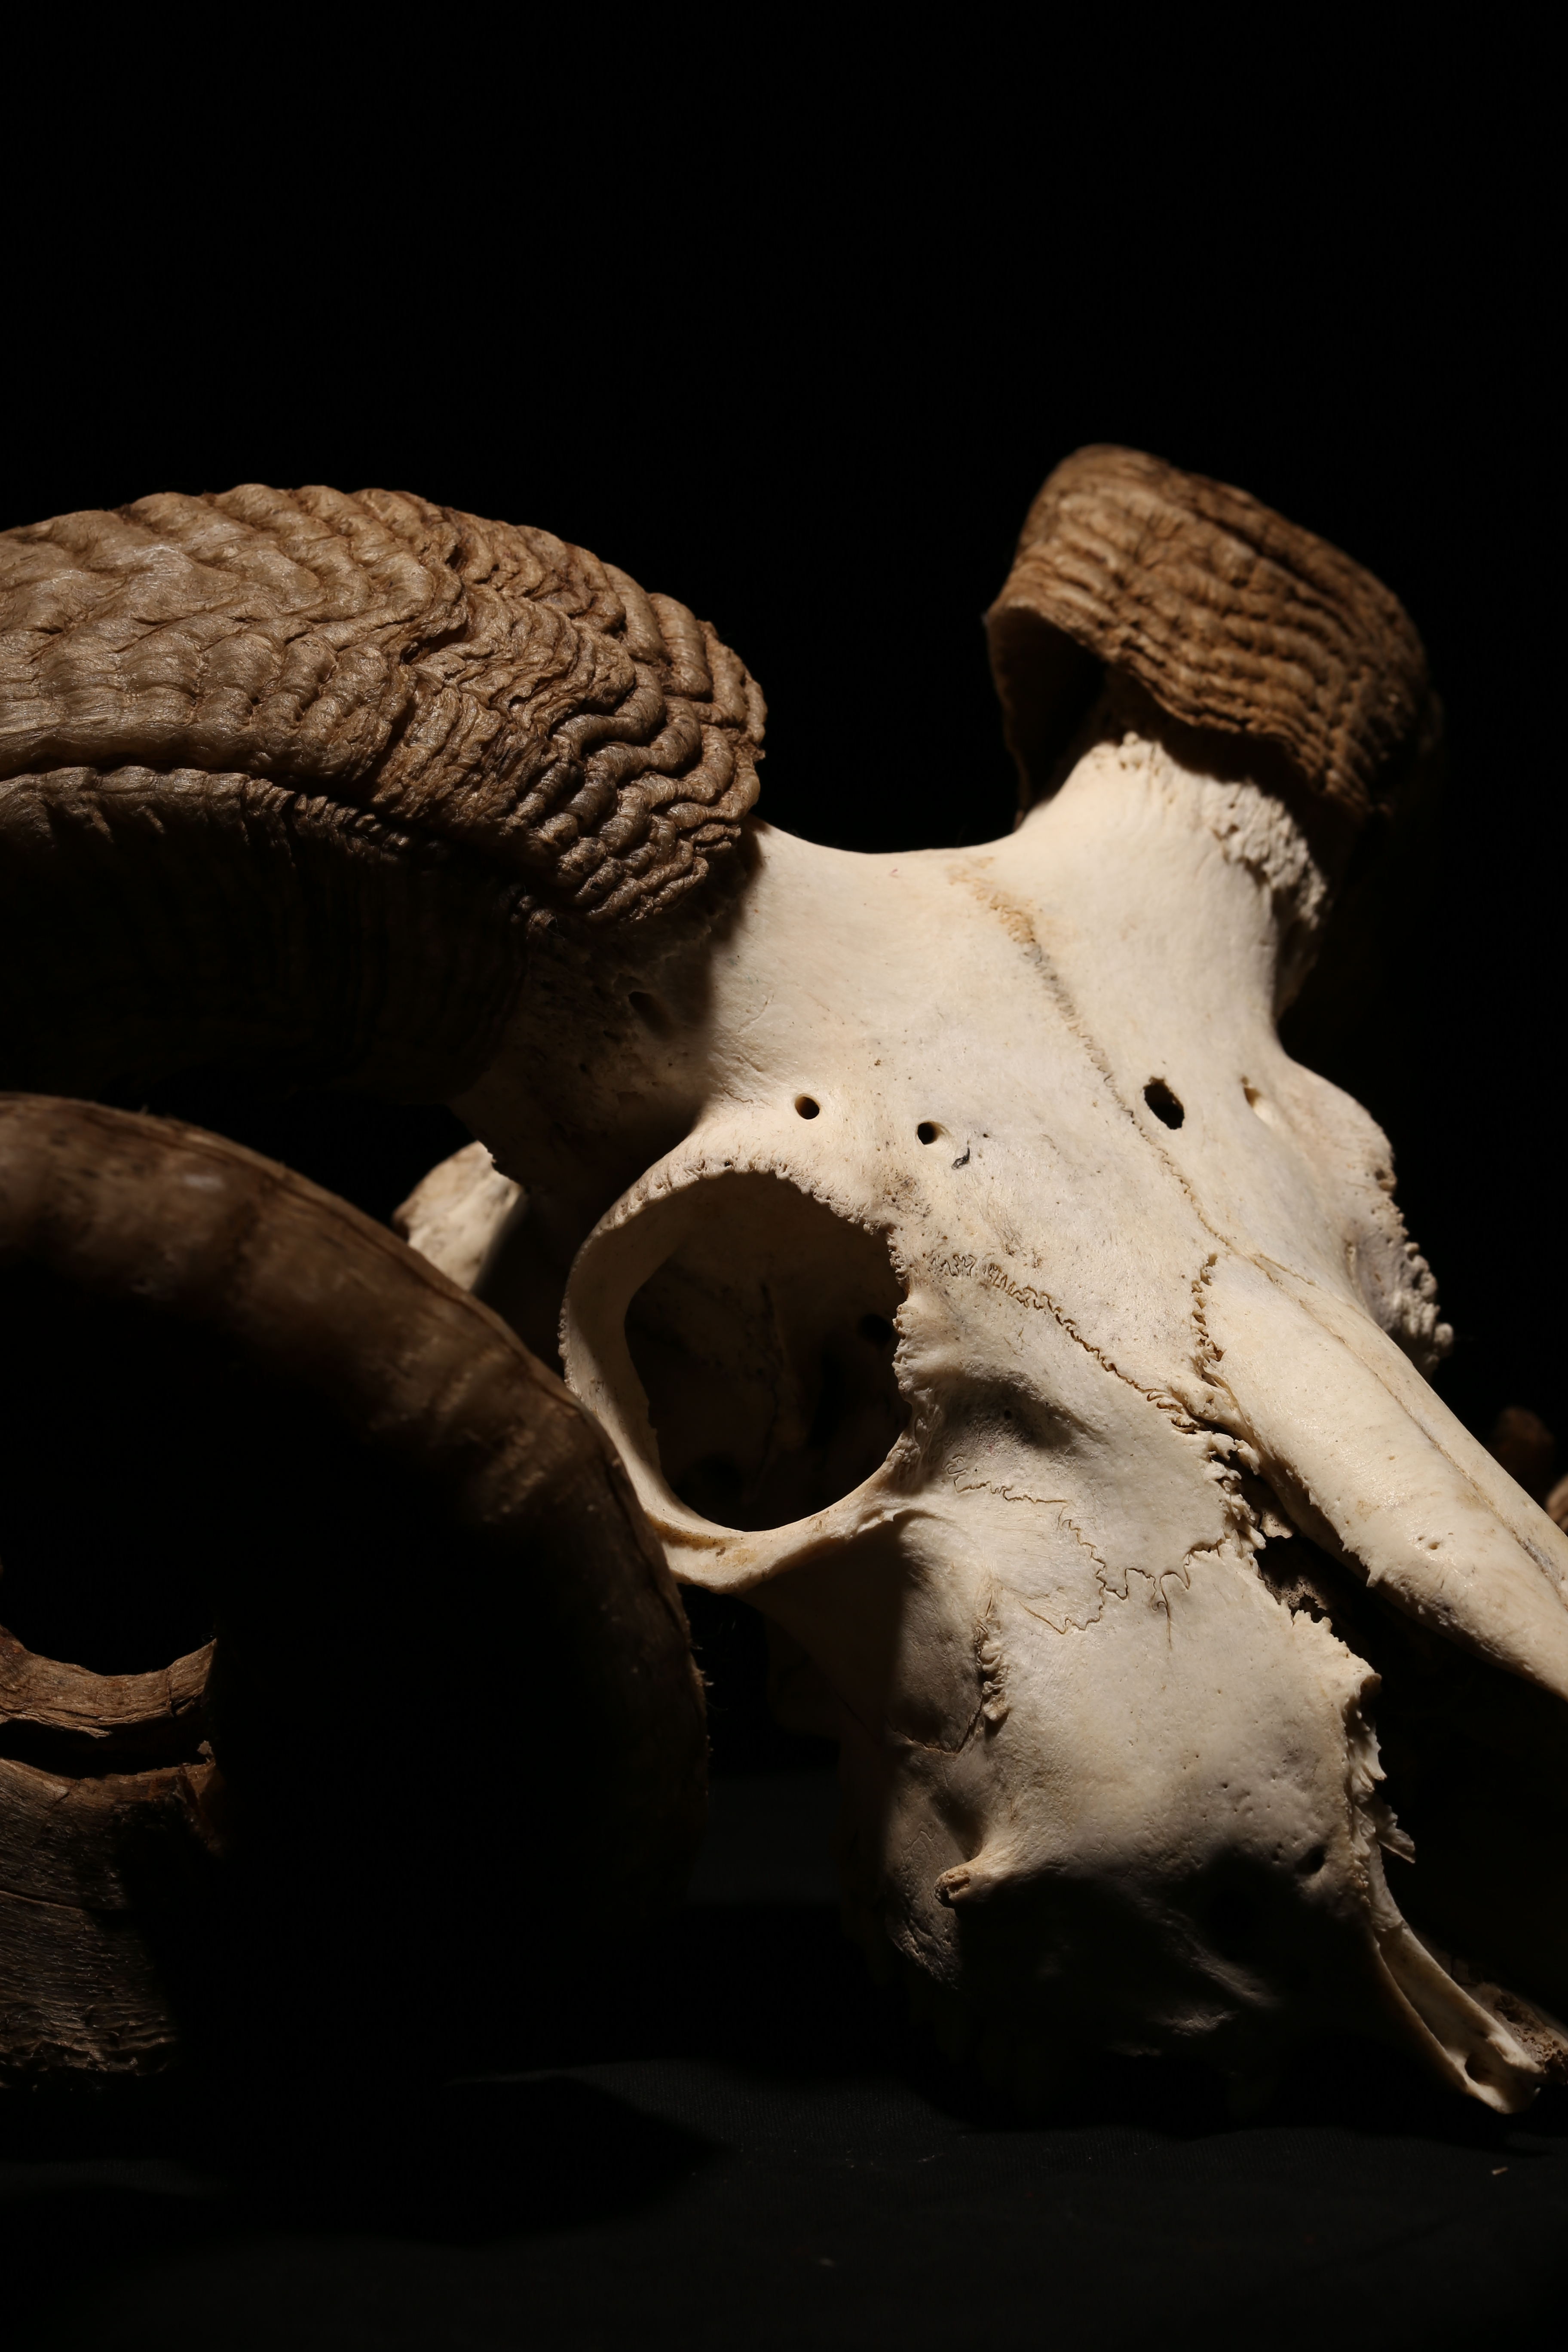 Sheep Skull, Anatomy, Research, Horns, Isolated, HQ Photo